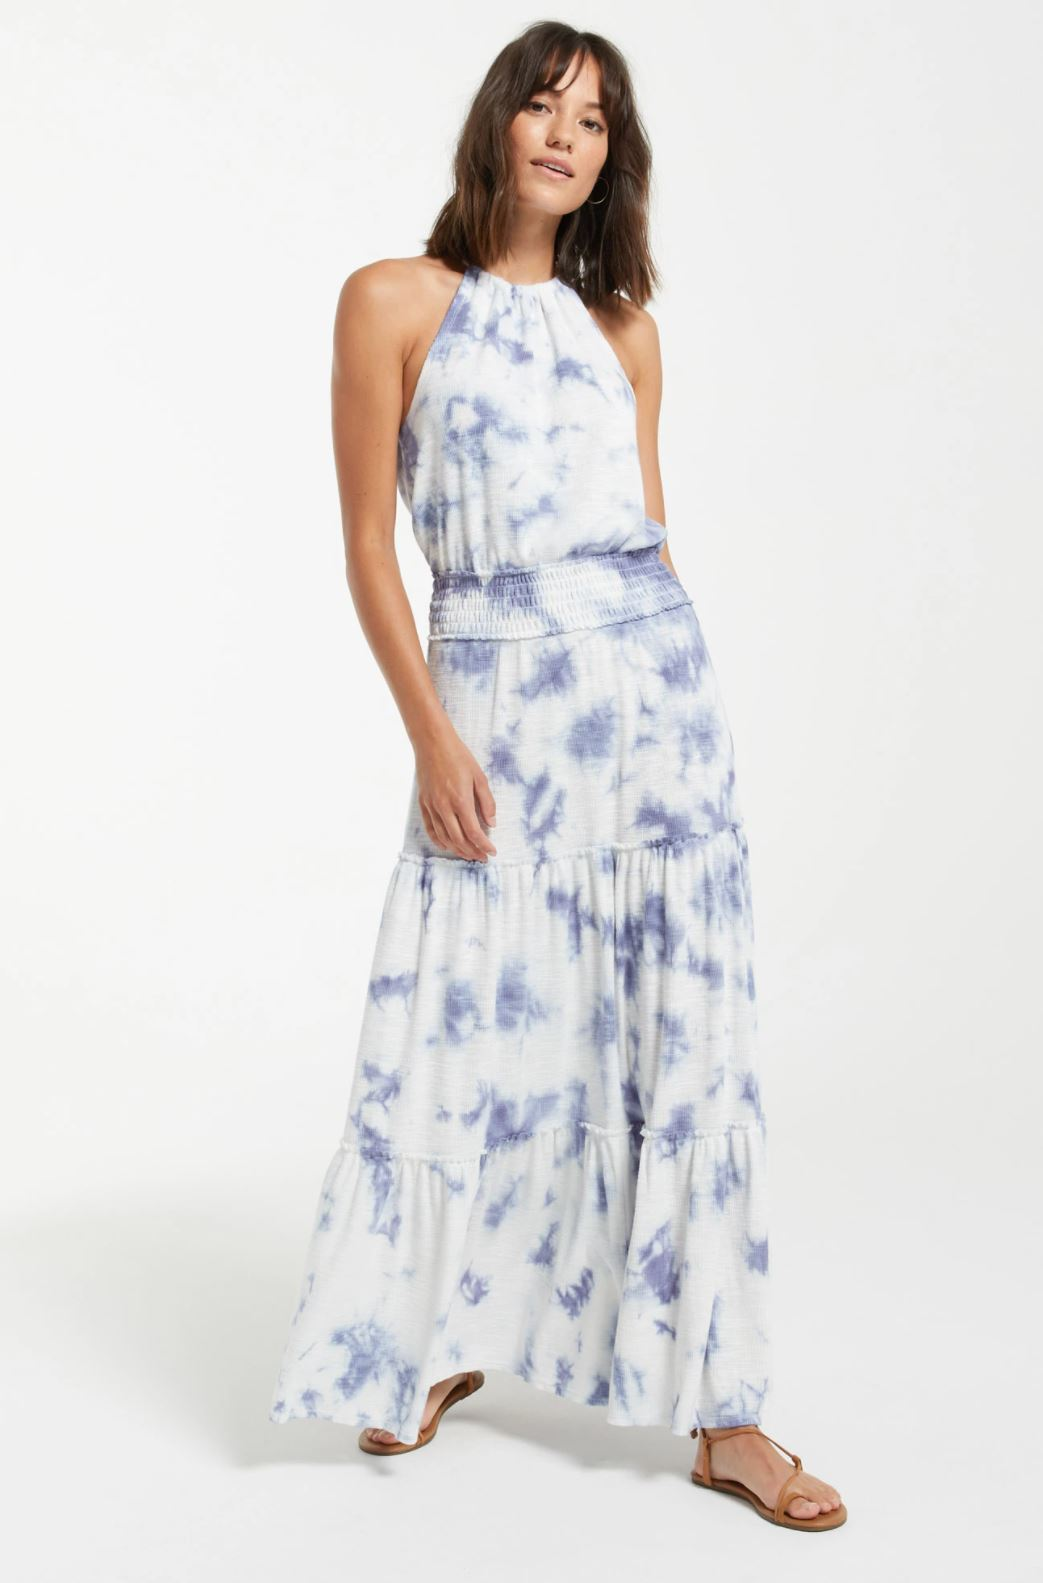 Z Supply Beverly Cloud Tie-Dye Slub Dress